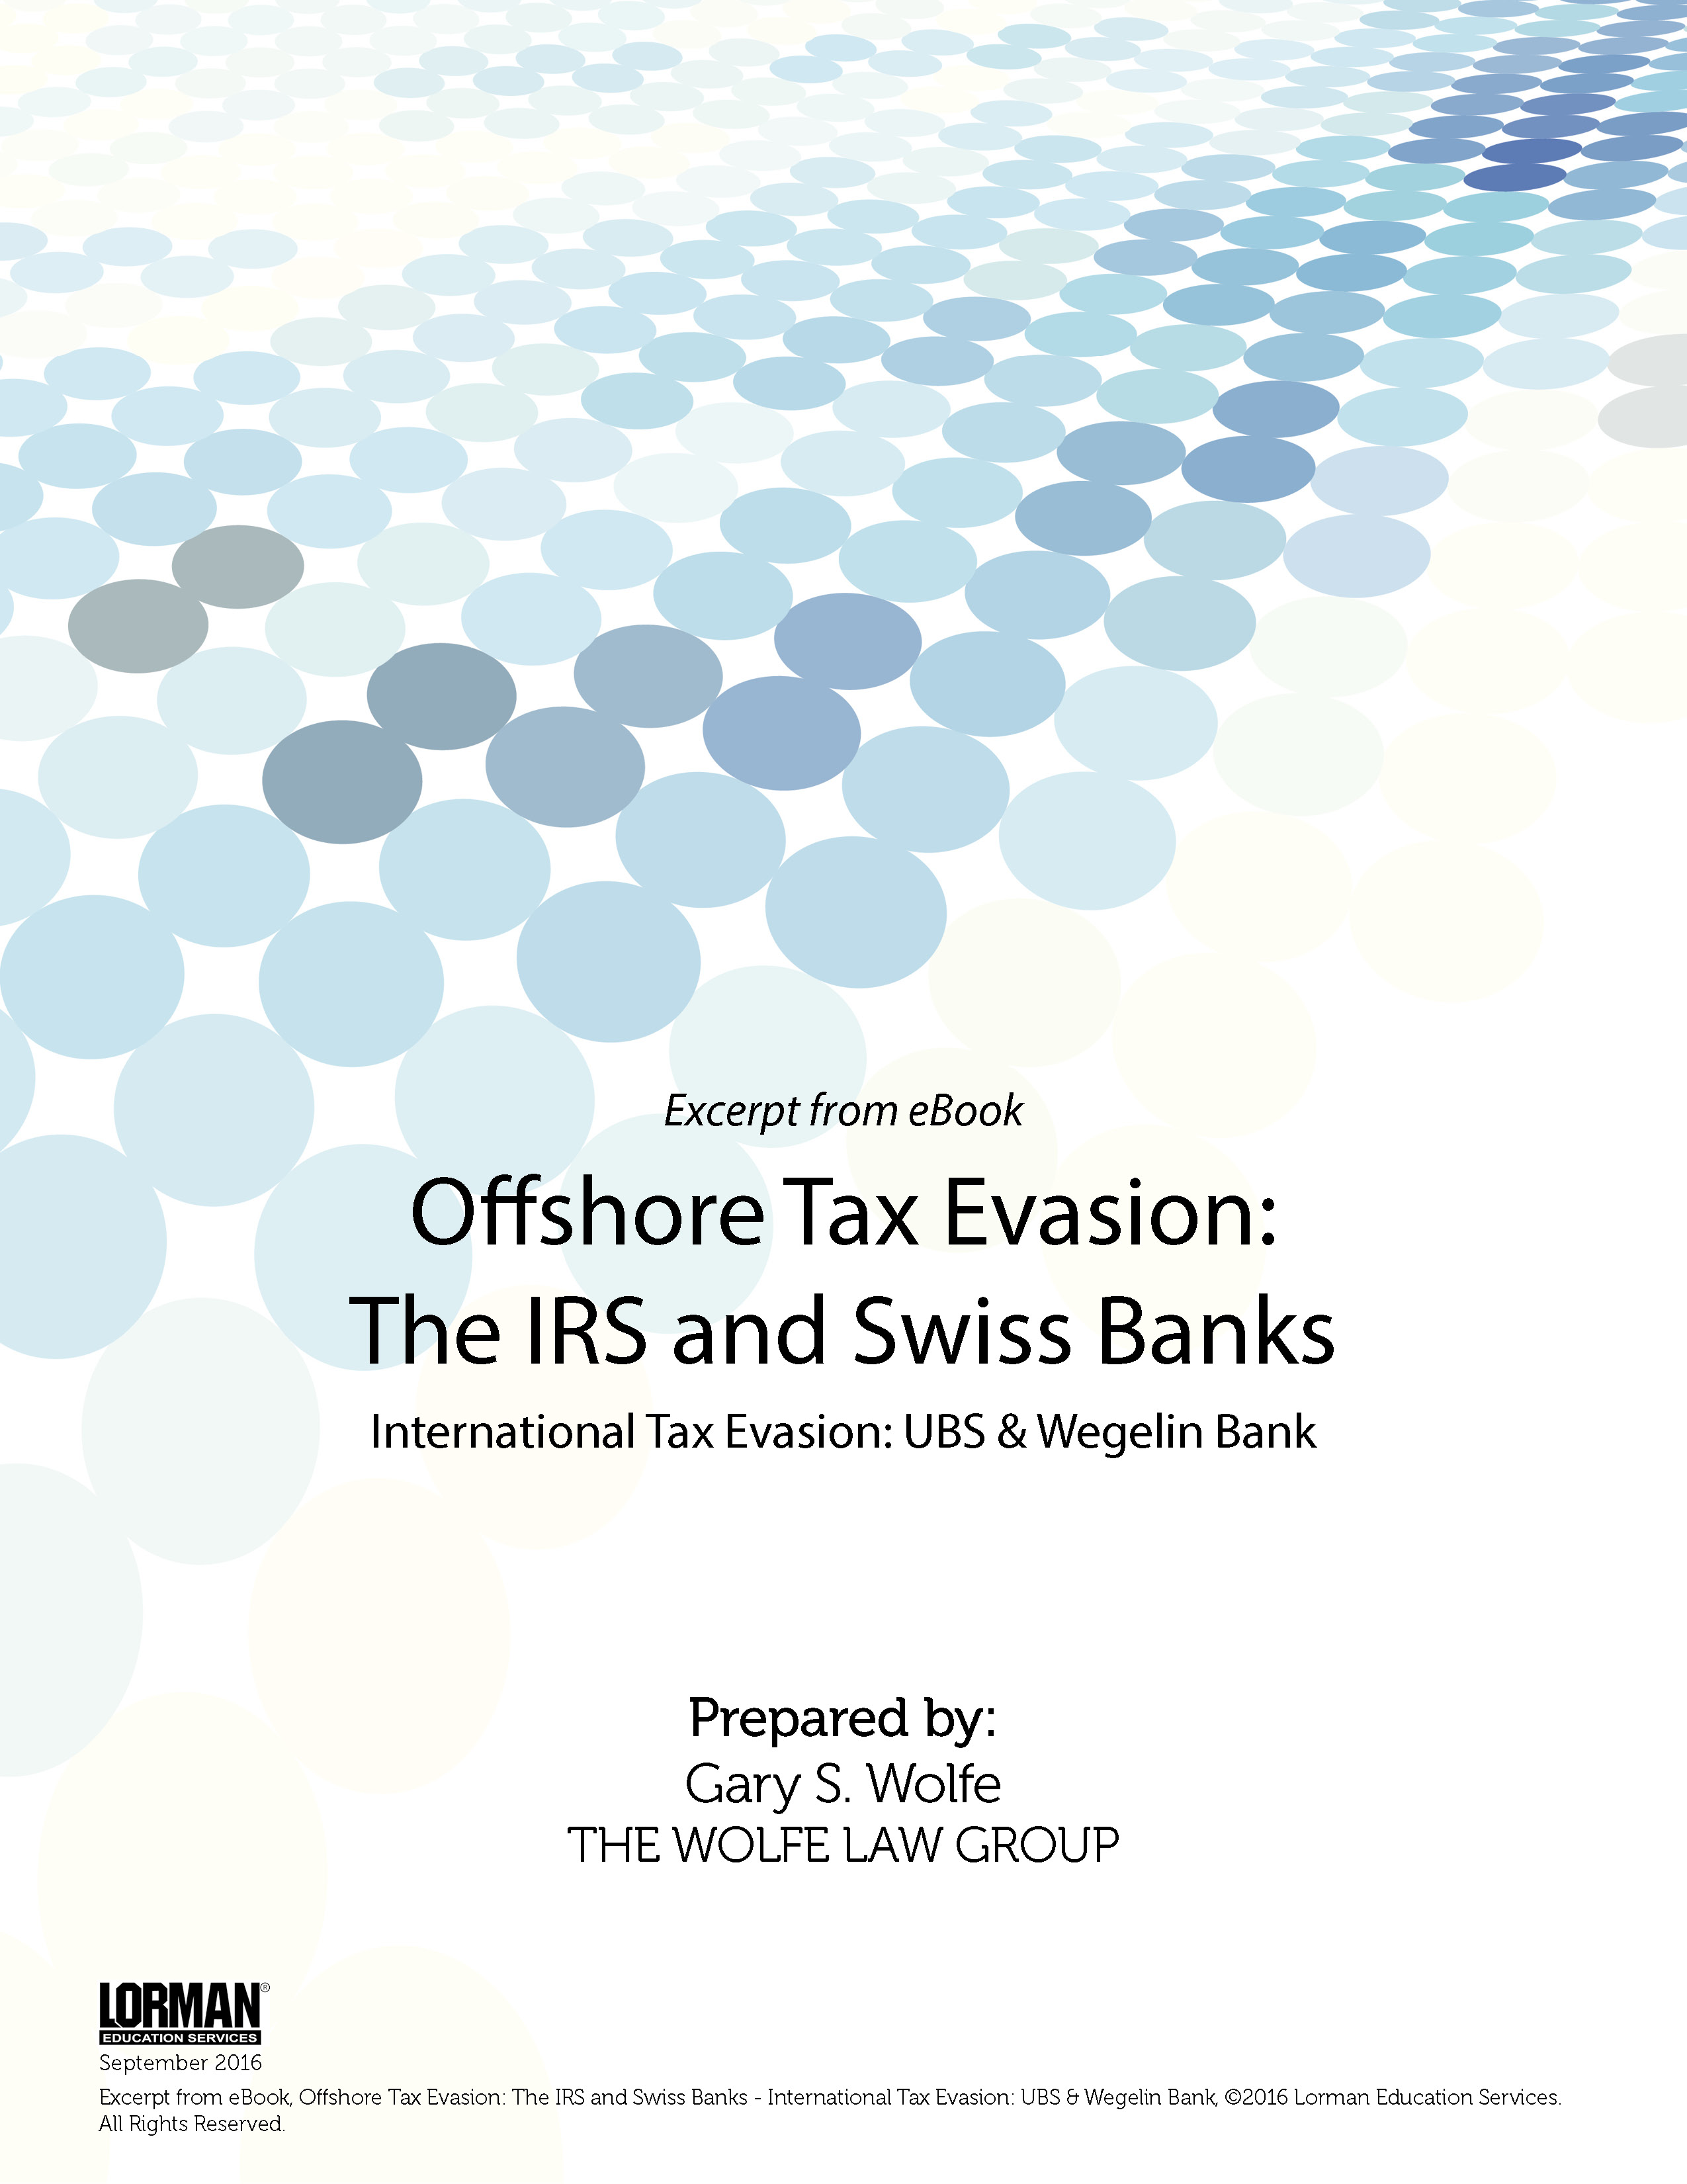 Offshore Tax Evasion: The IRS and Swiss Banks - International Tax Evasion: UBS & Wegelin Bank